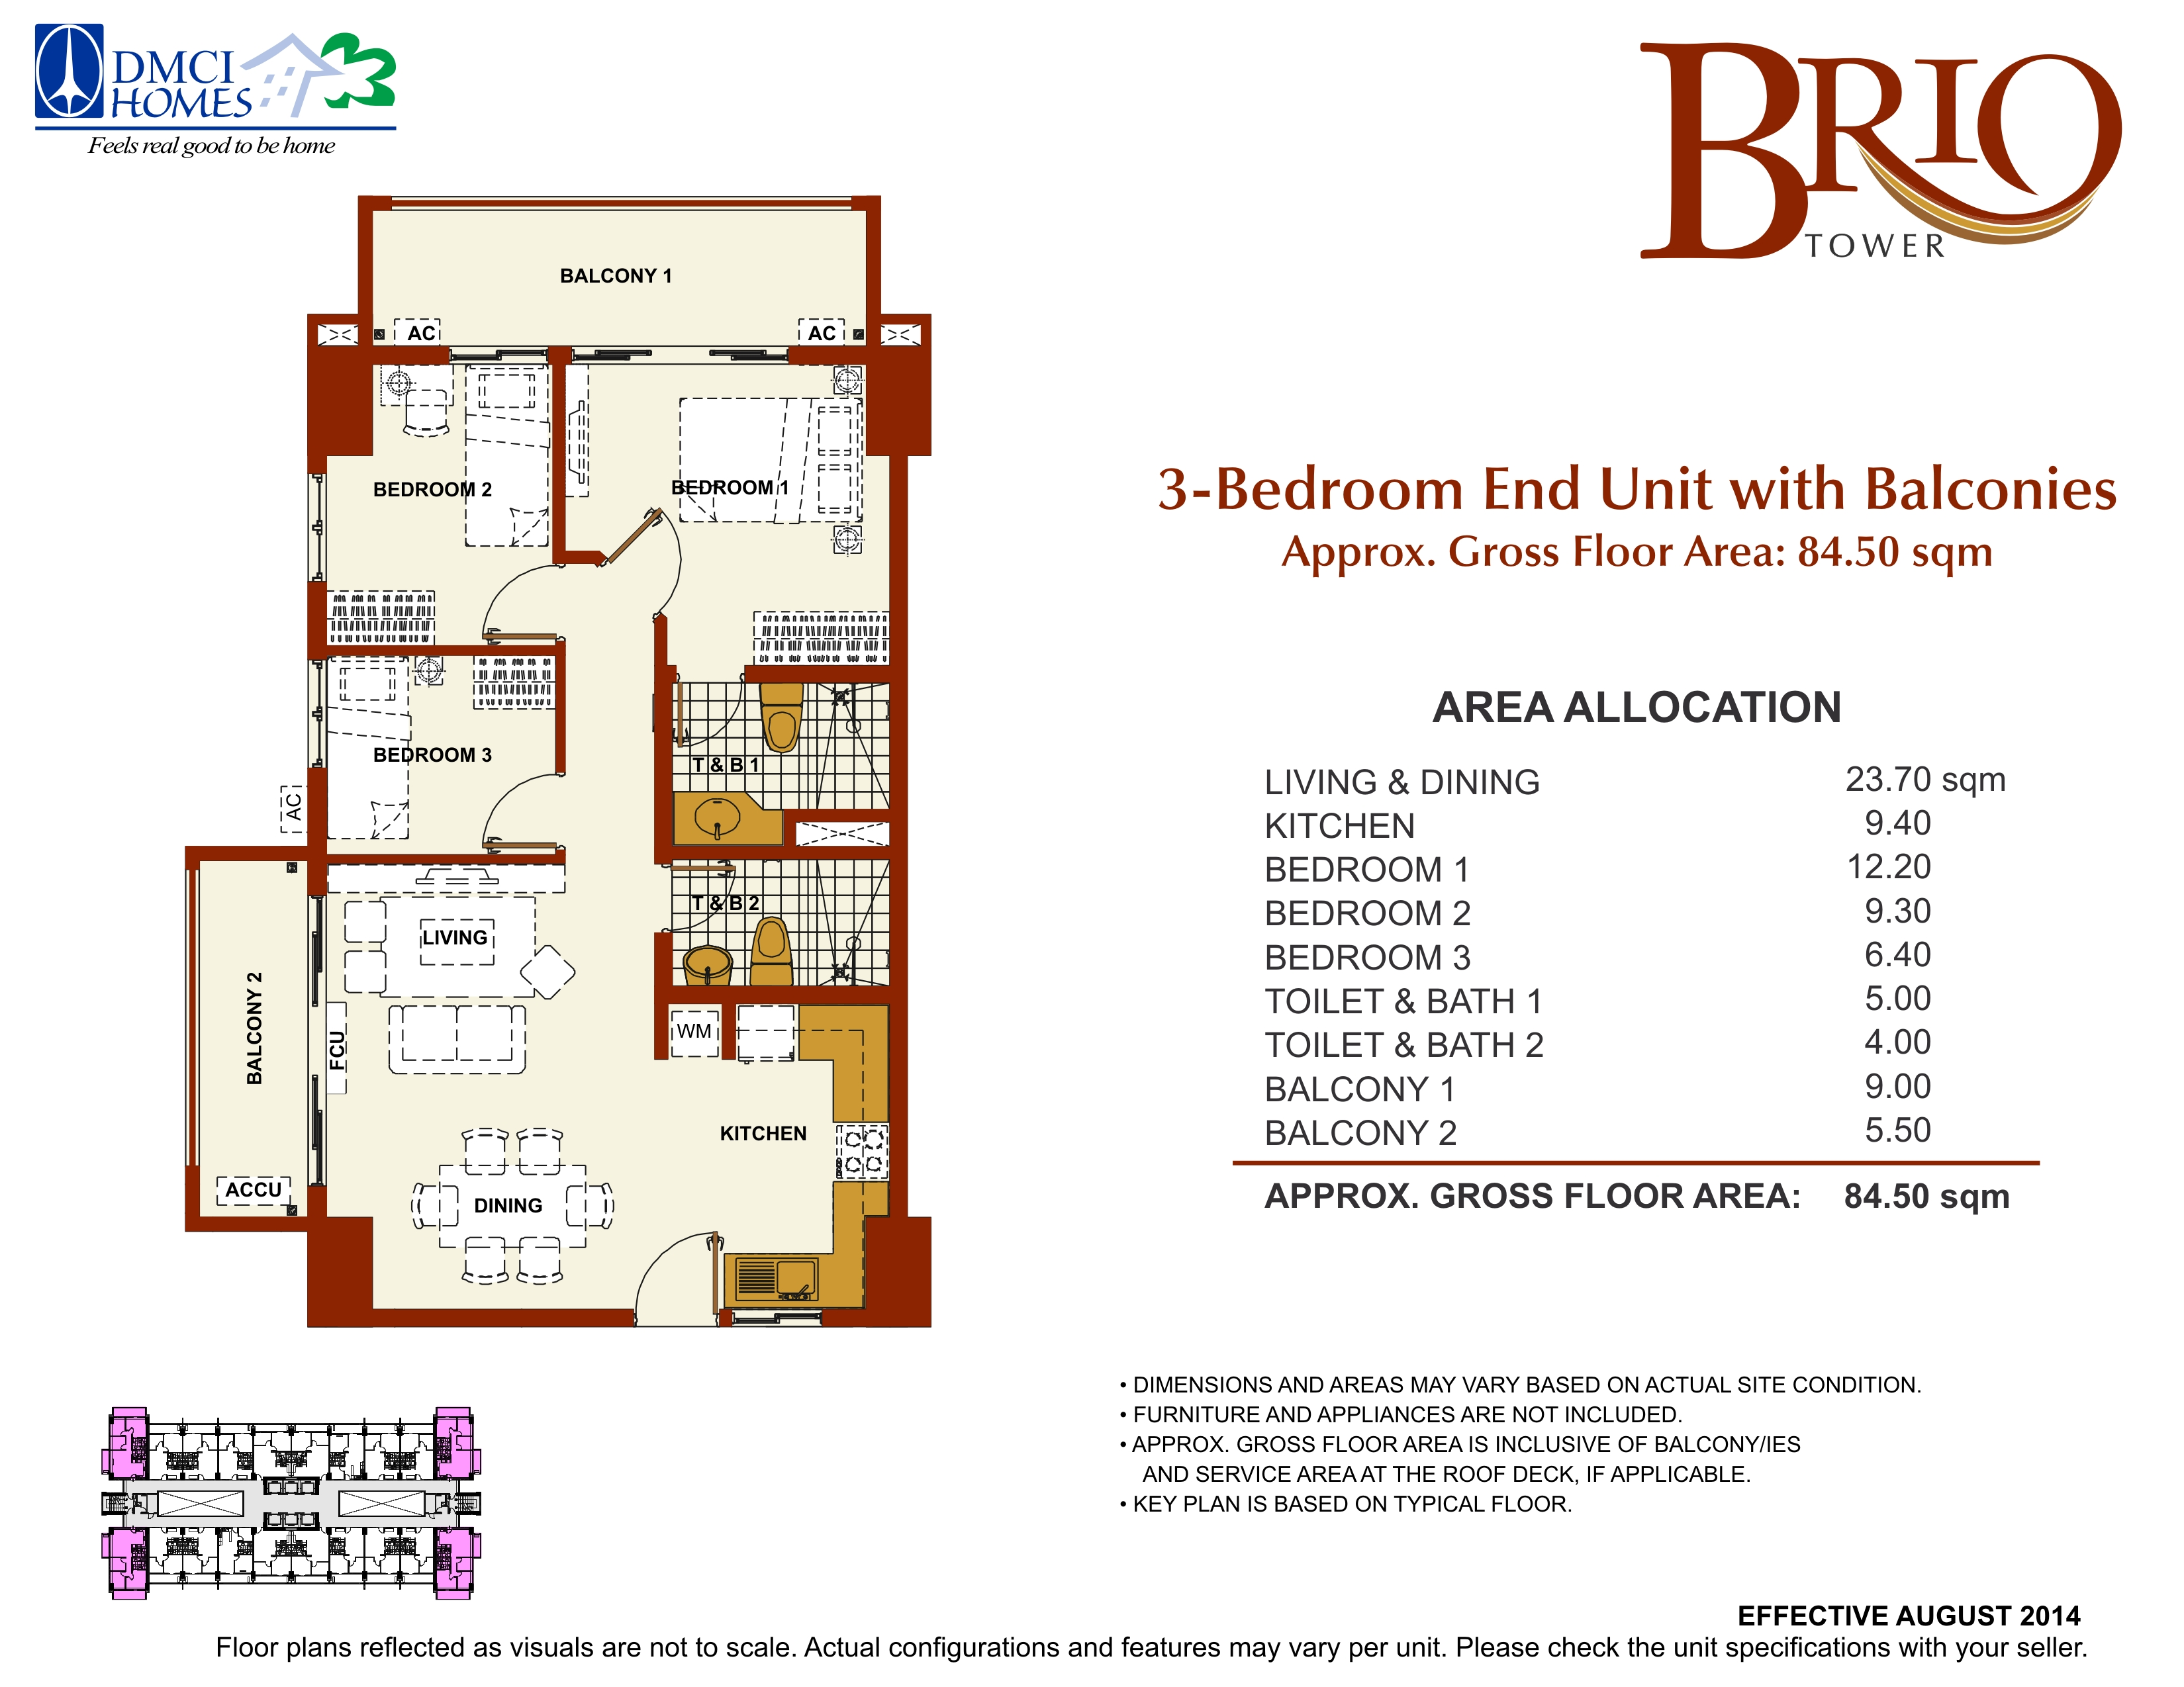 brio-tower-3br-end-unit-with-balconies-7